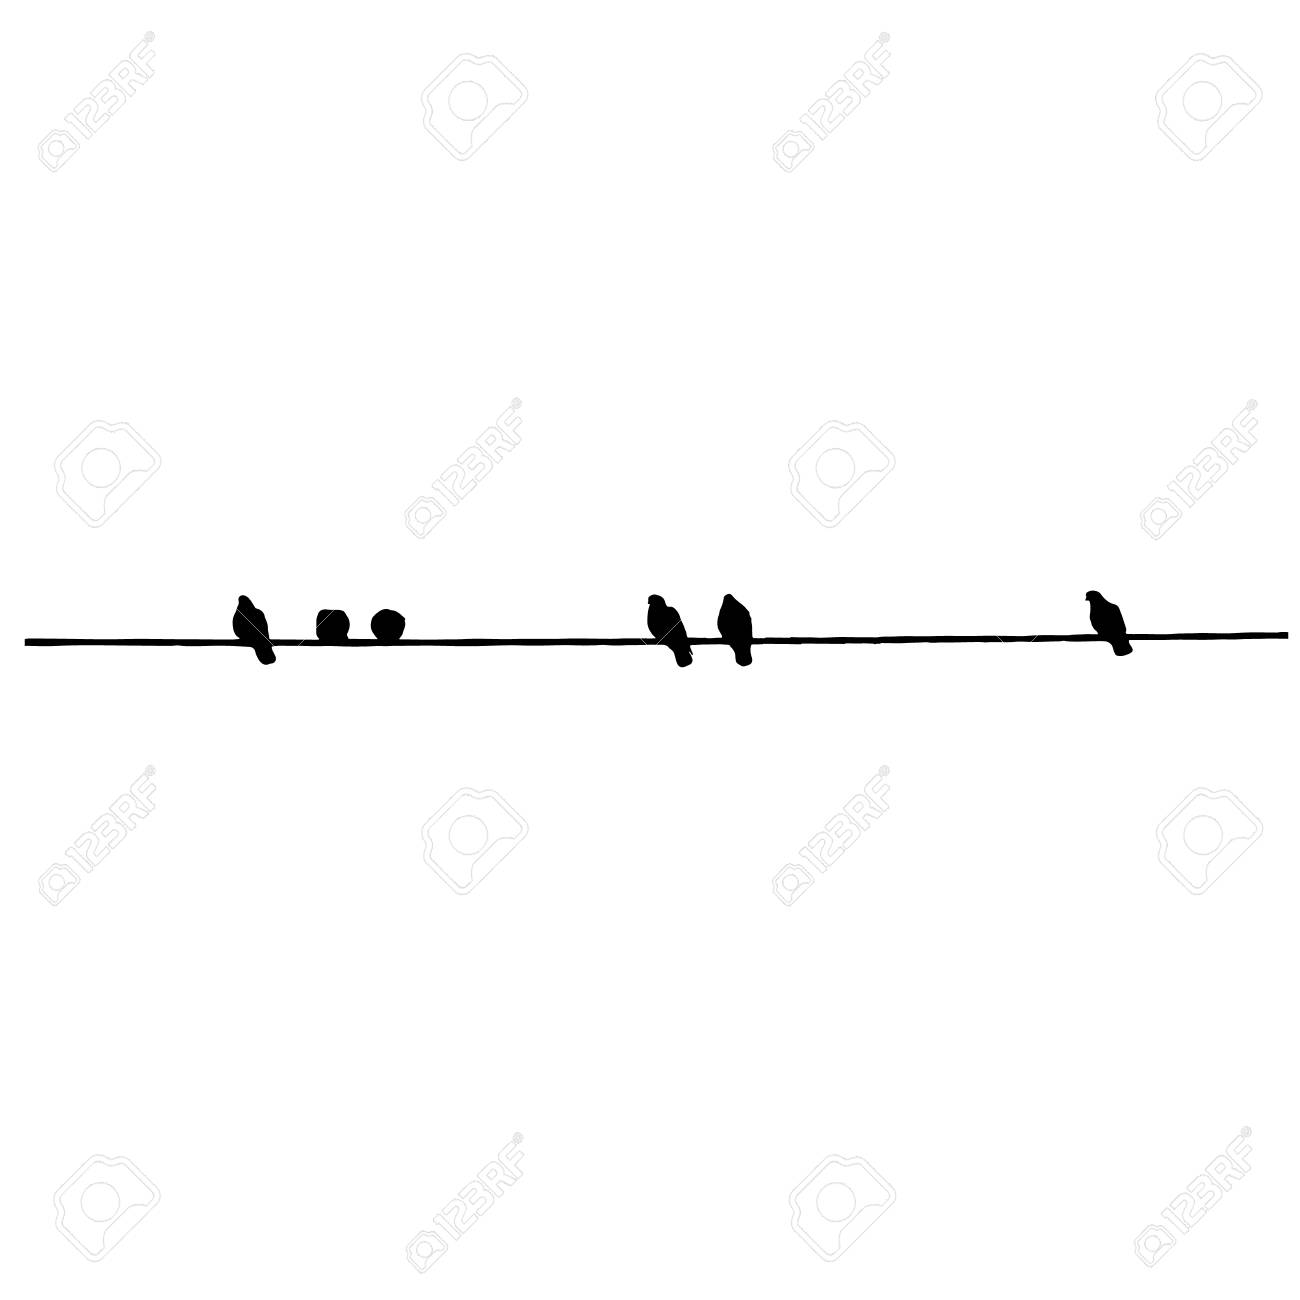 Pigeon silhouettes on the wire. Vector illustration - 97292885